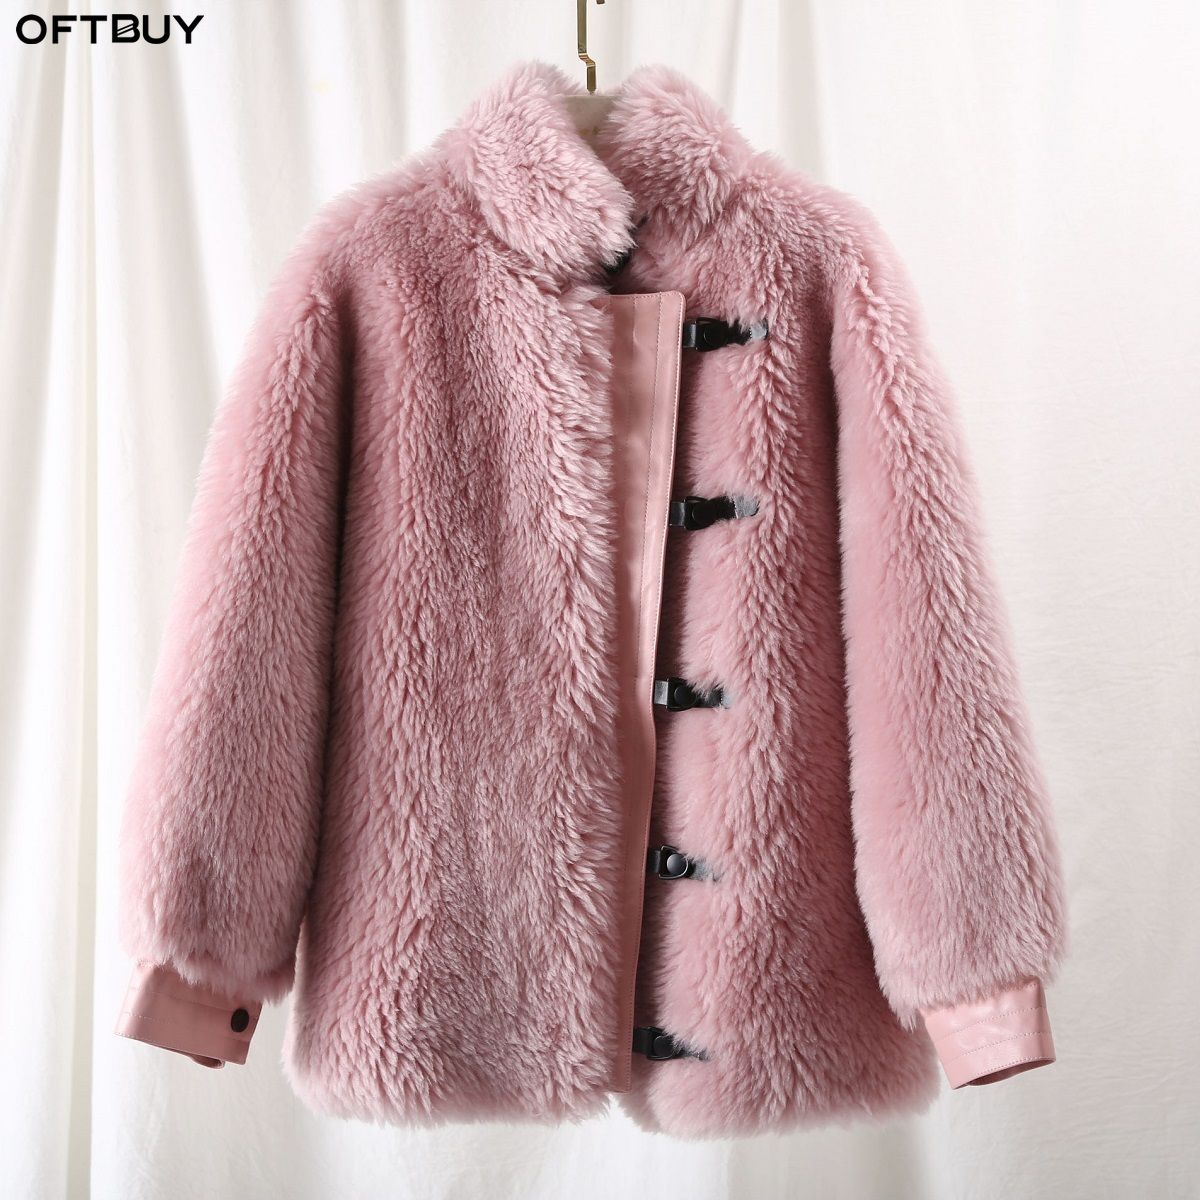 OFTBUY 2019 Winter Jacket Women Real Fur Coat Wool Content Woven Outerwear Female Teddy Polar Fleece Plush Streetwear Fashion